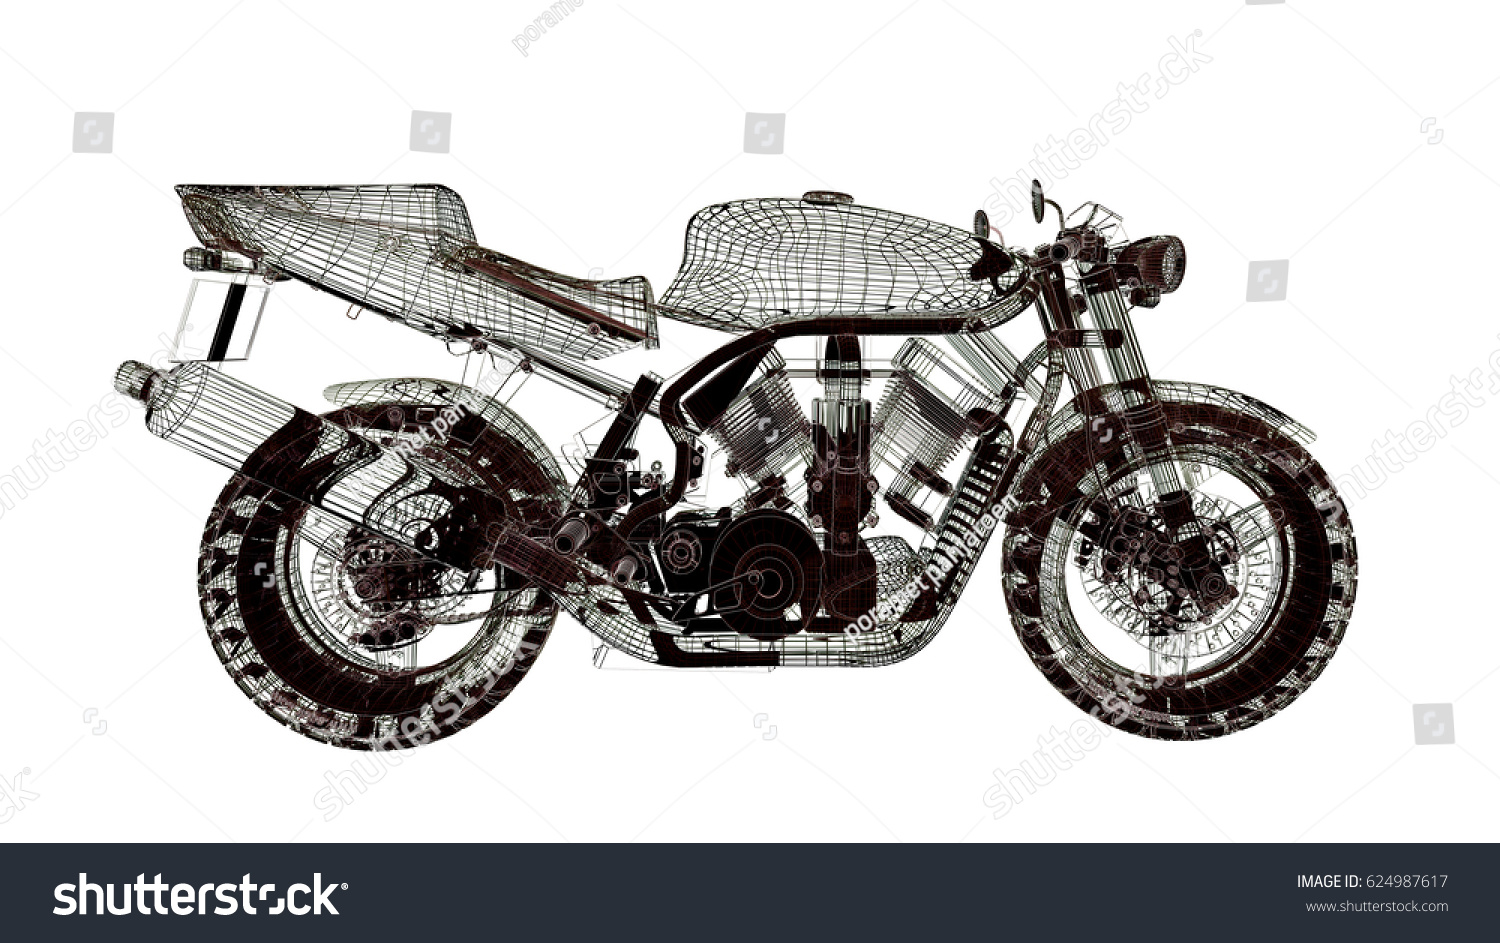 Motorcycle Model Body Structure Wire Model Stock Illustration ...